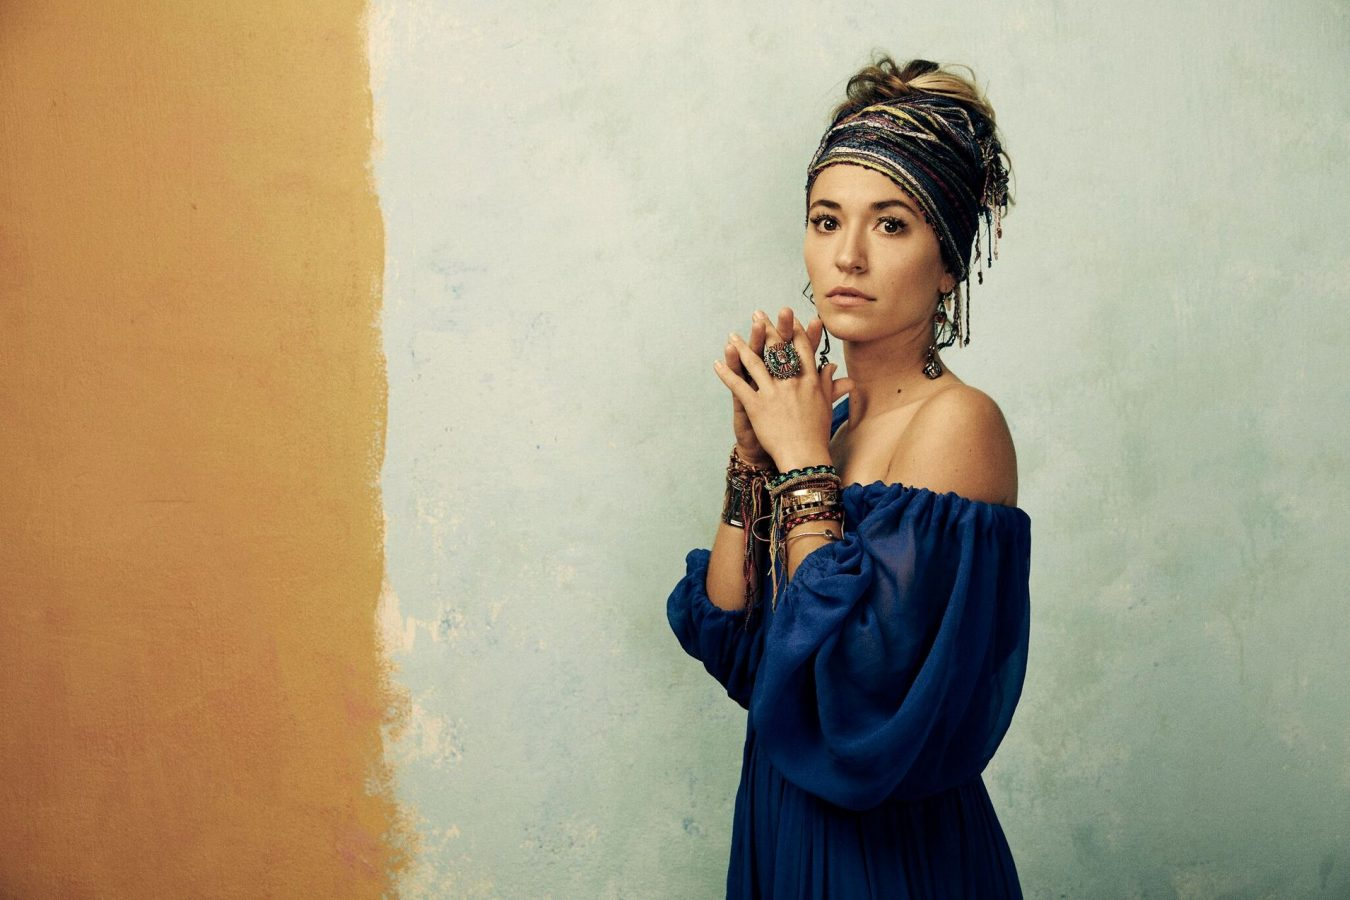 Rolling Stone - A Christian Singer Is Bigger Than Drake and Ariana This Week - Lauren Daigle